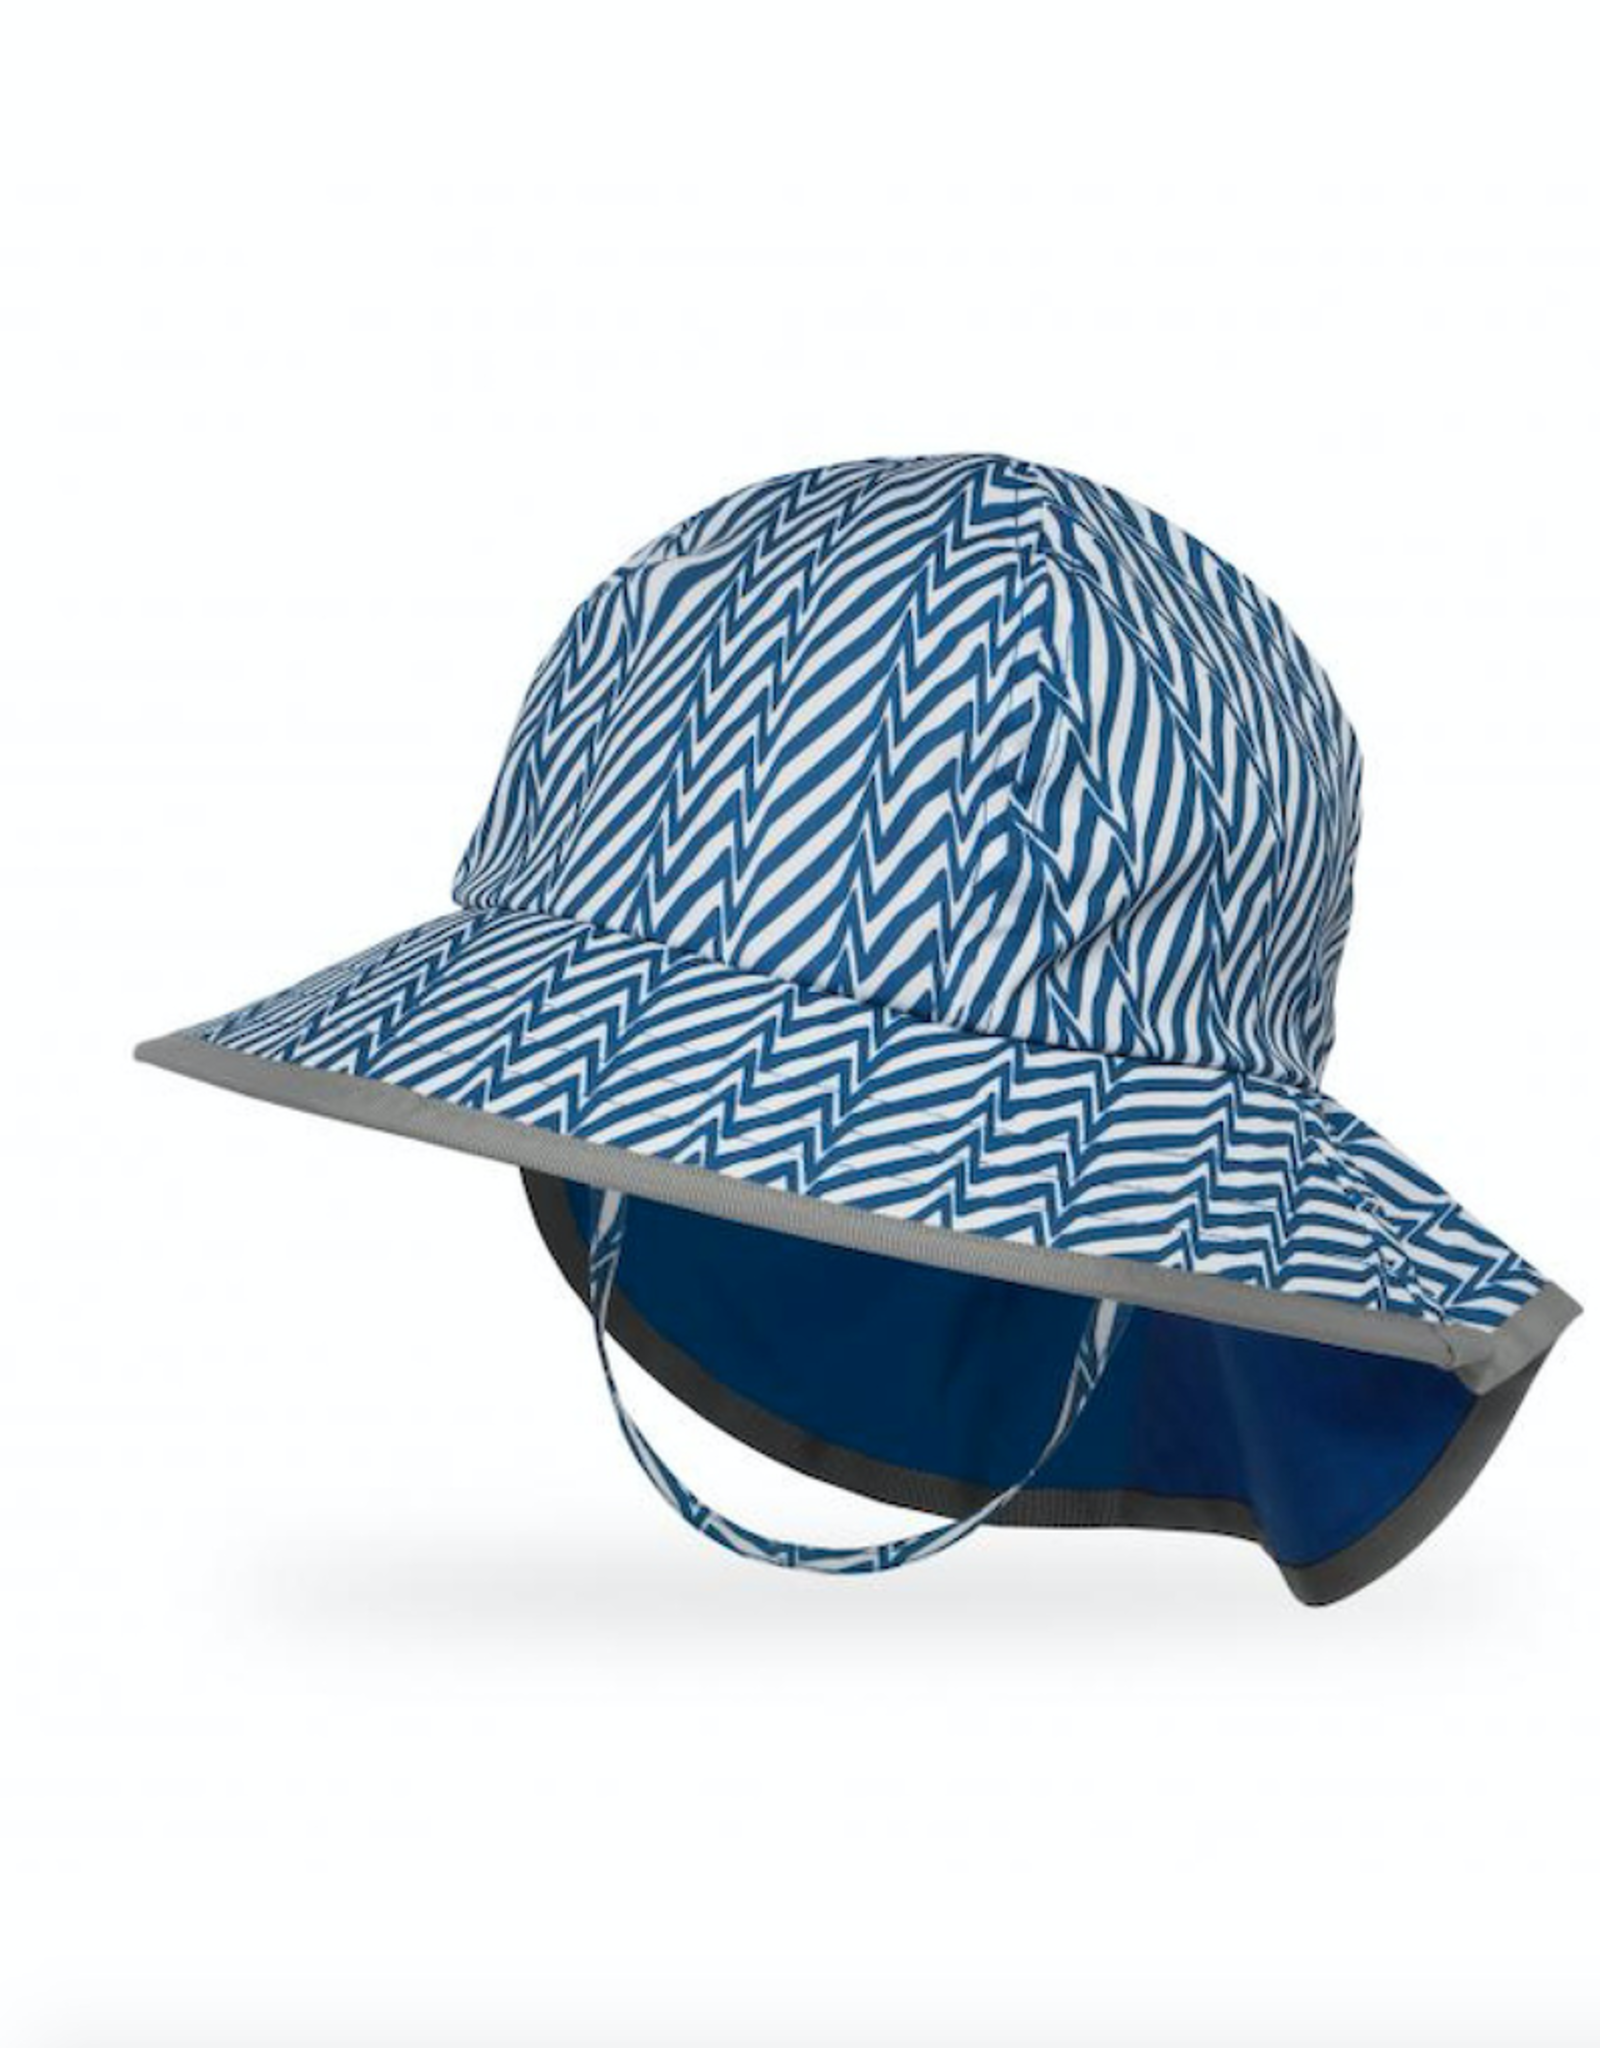 Sunday Afternoon Kid's Play Hat for Boys